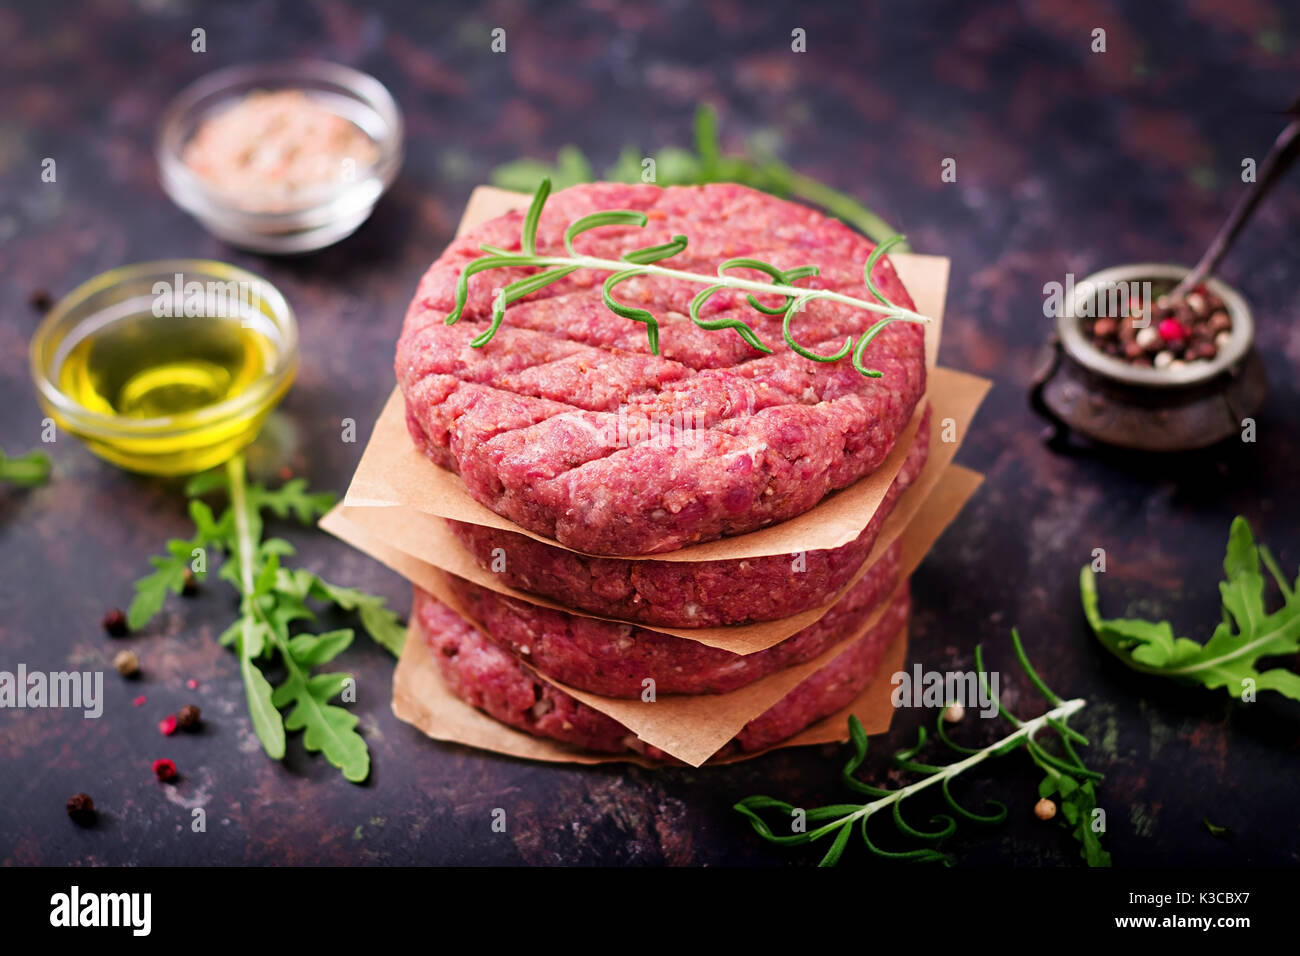 Fresh raw homemade minced beef steak burger with spices on black background Stock Photo